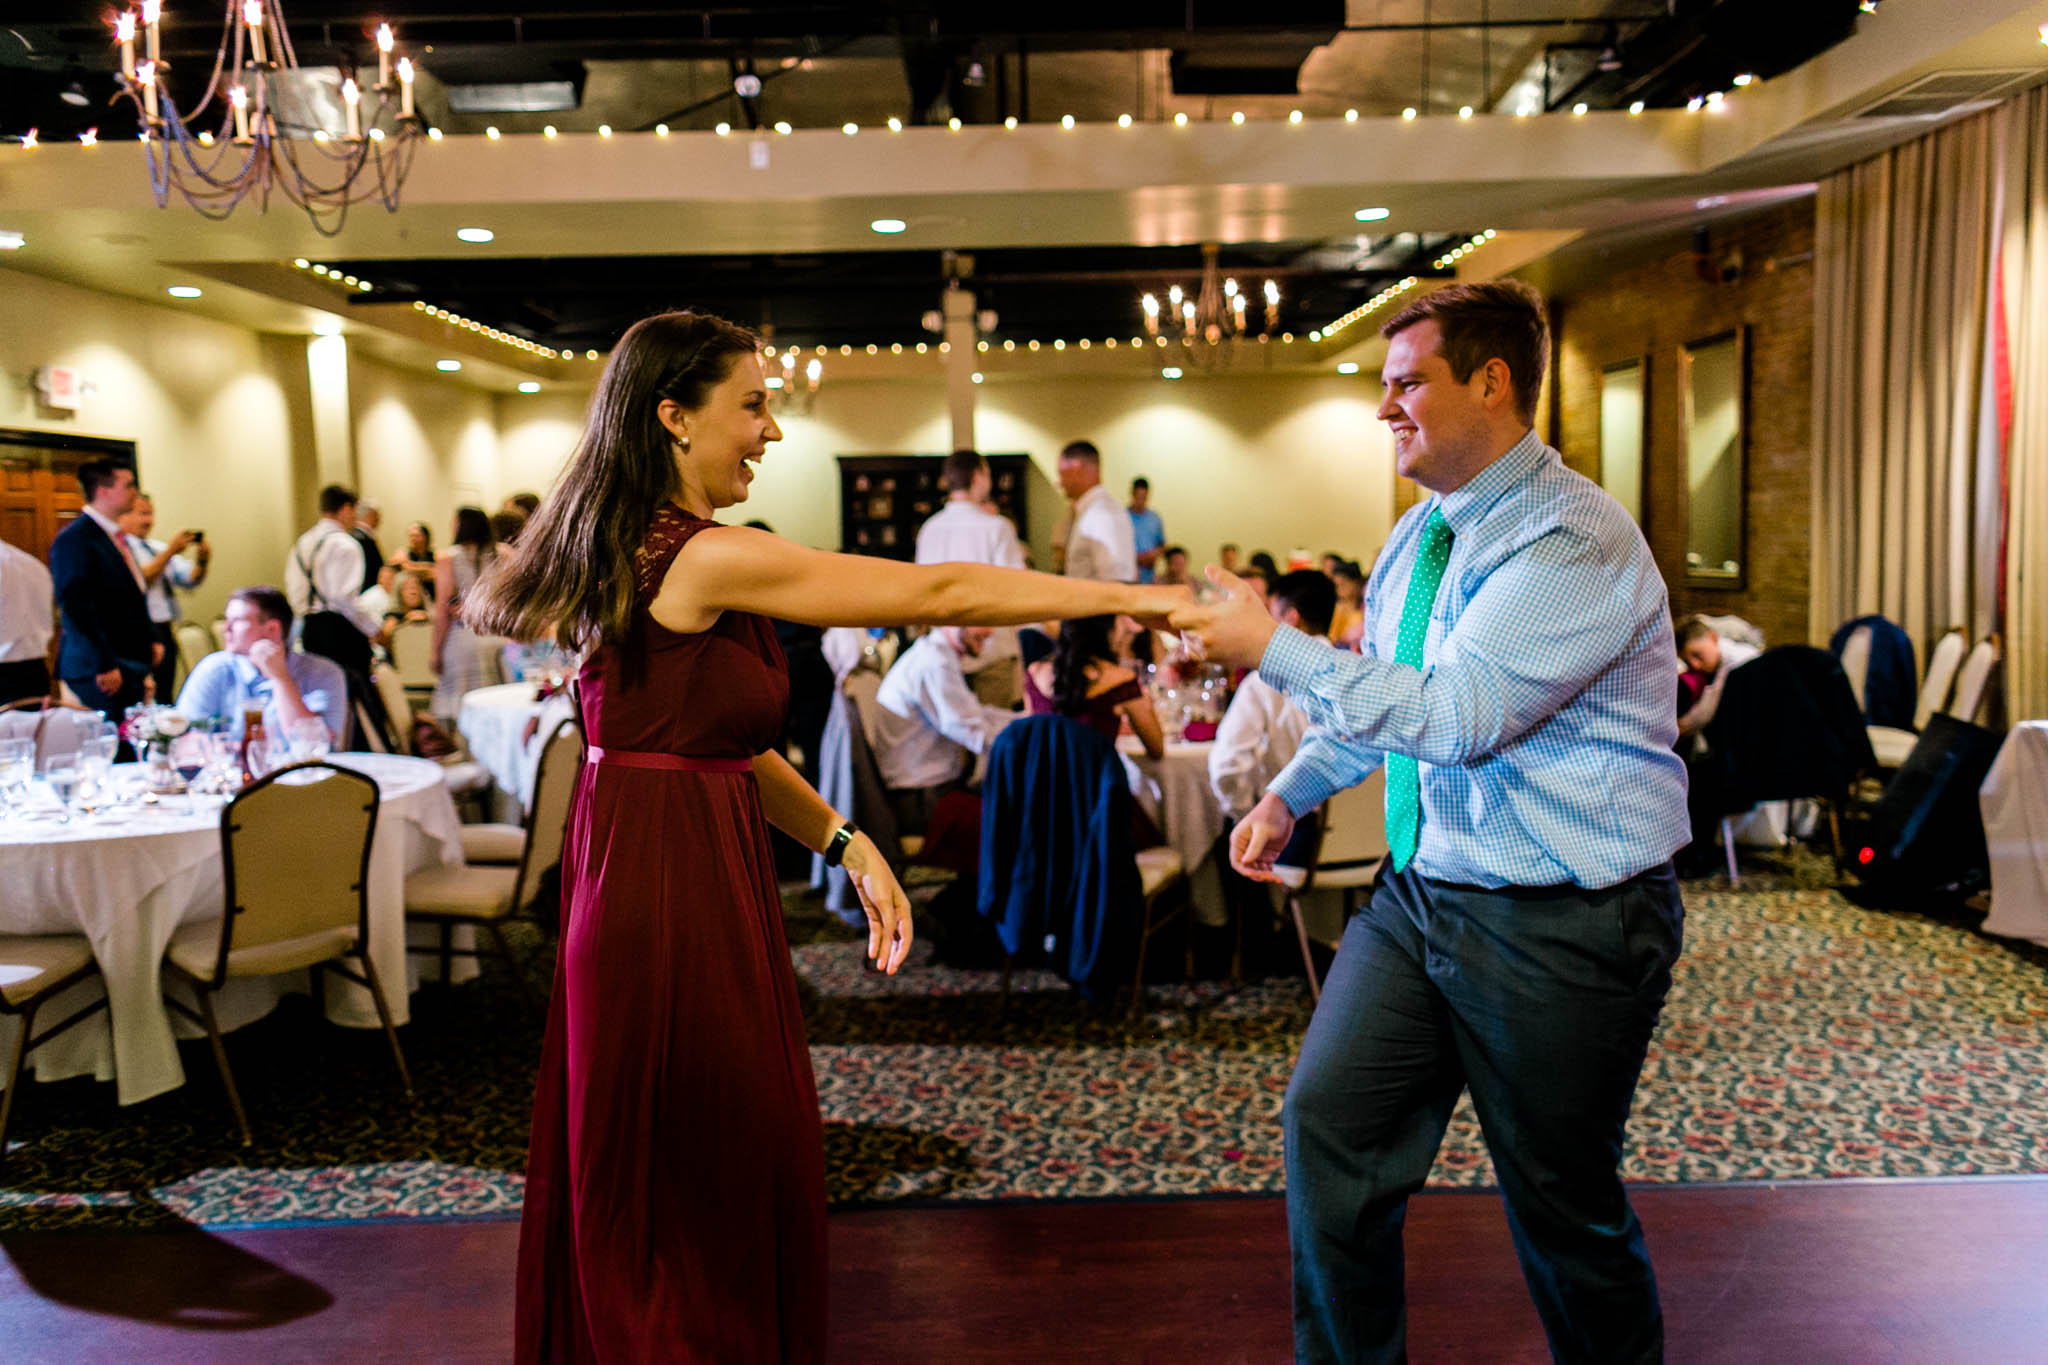 Man and woman dancing | Royal Banquet Hall |People dancing at wedding reception at Royal Banquet Conference Center | Raleigh Wedding Photographer | By G. Lin Photography